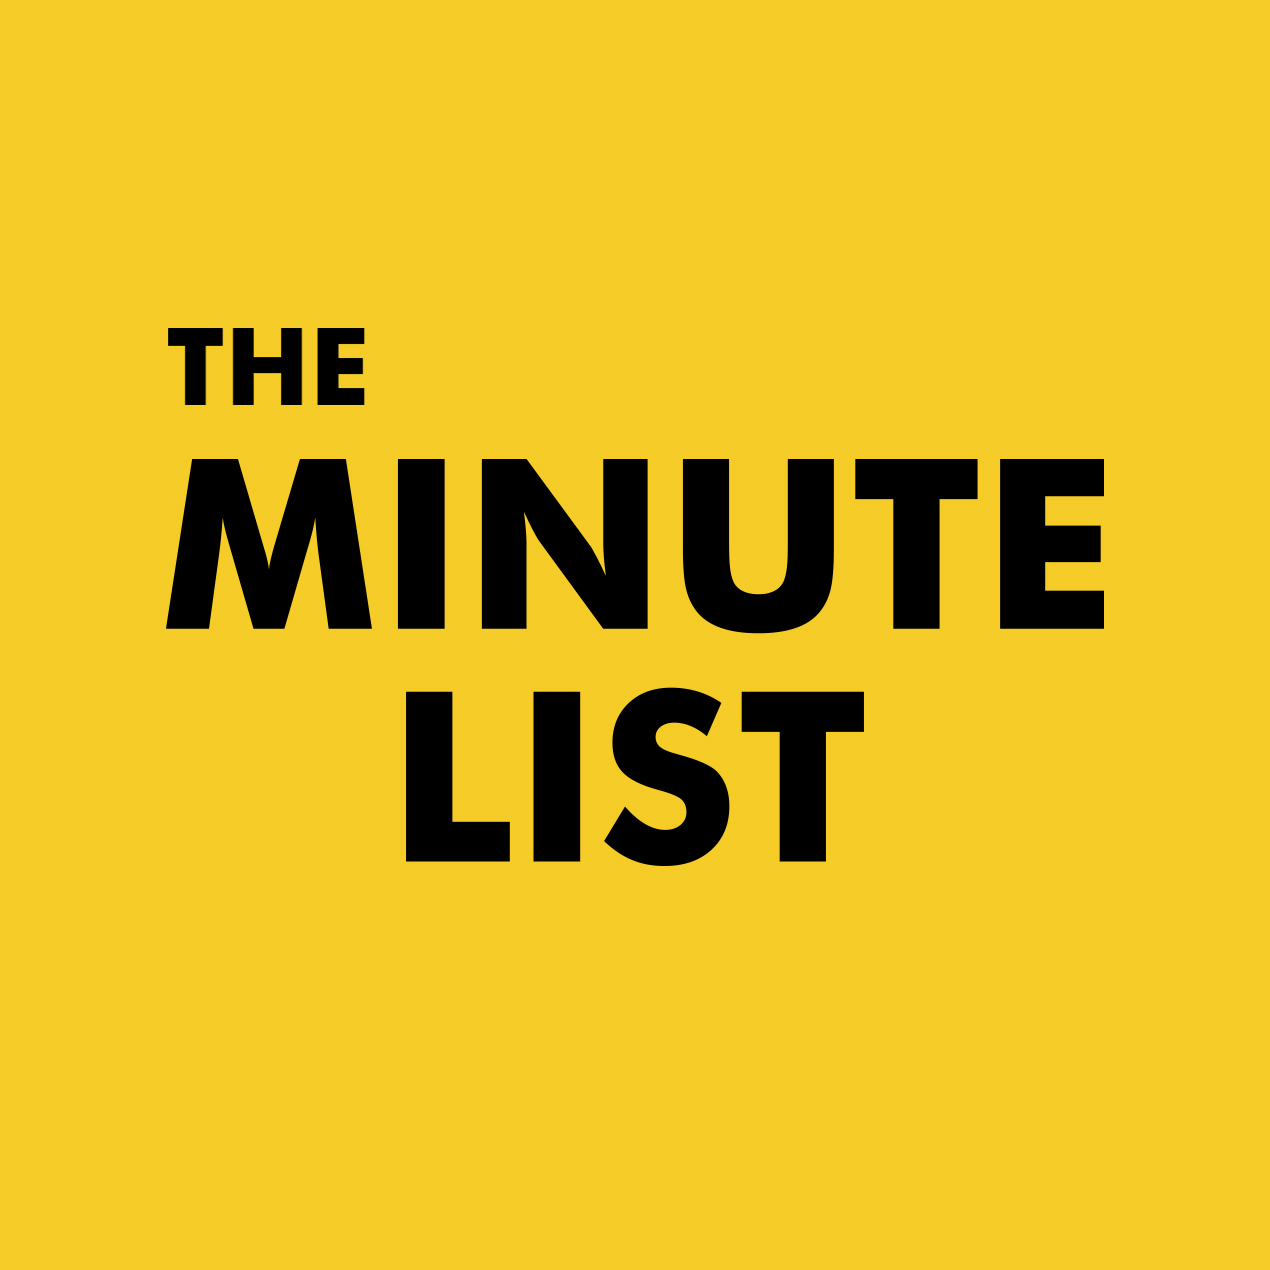 The Minute List